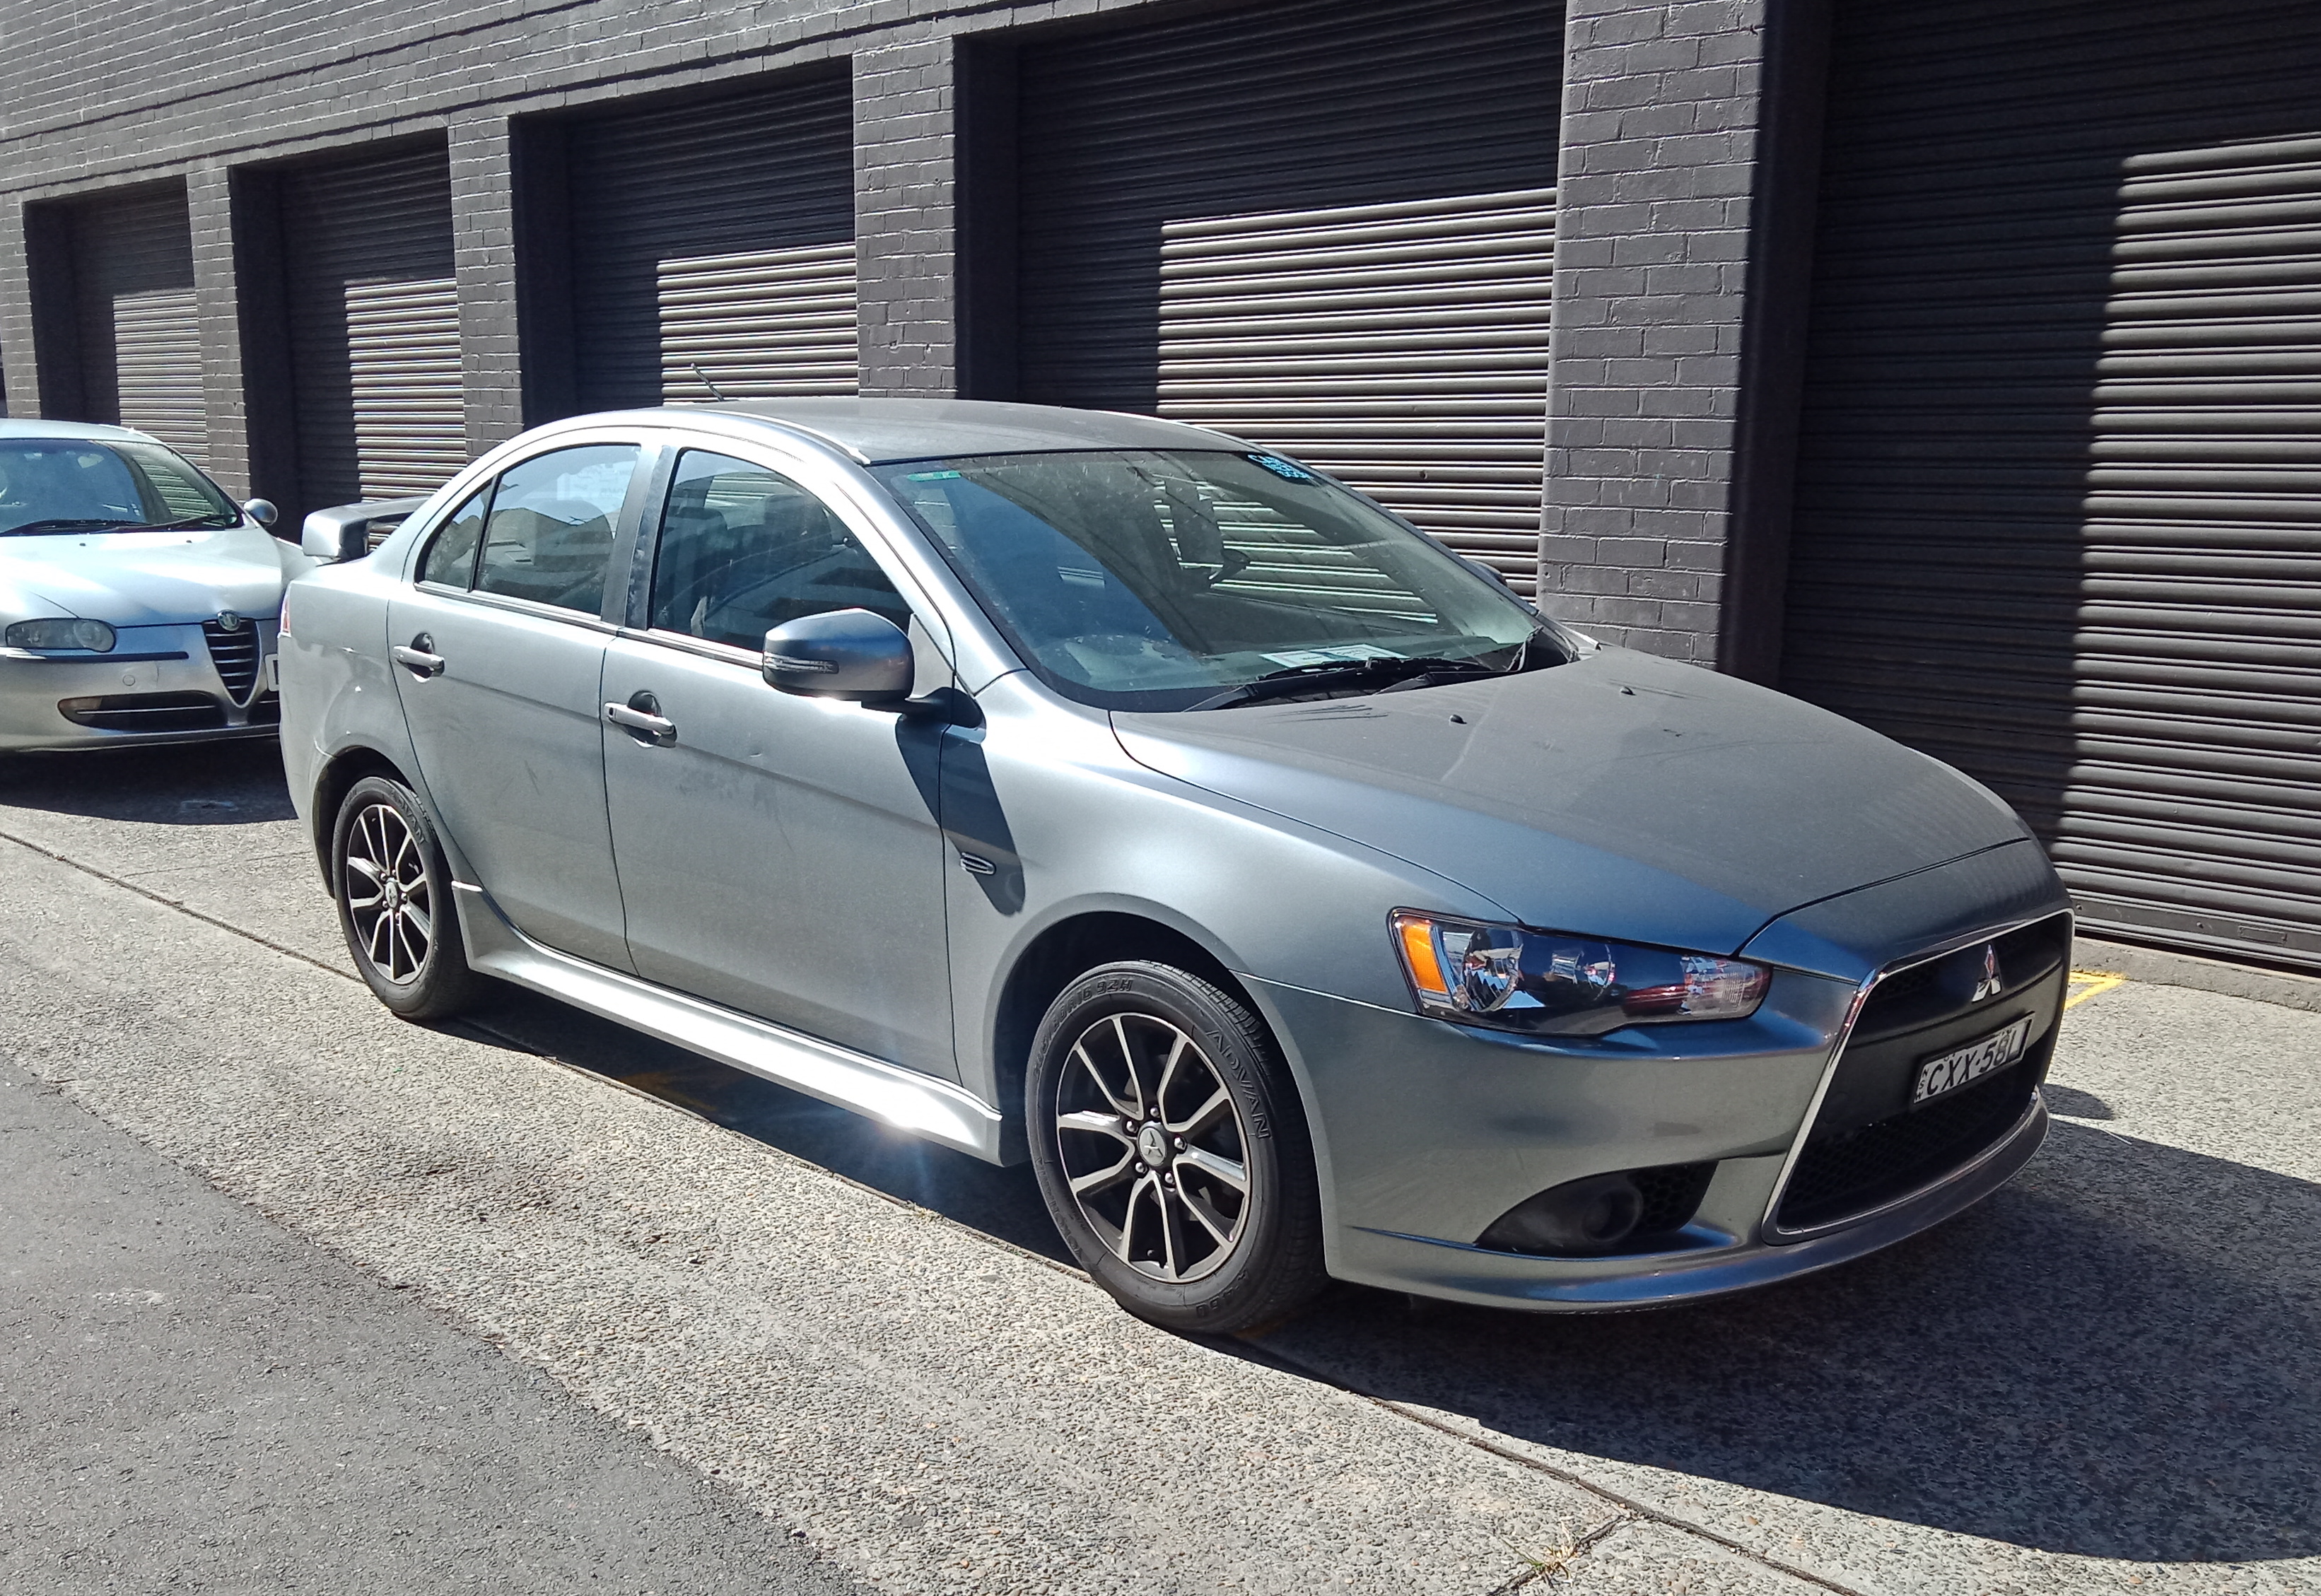 Picture of Jonathan's 2015 Mitsubishi Lancer